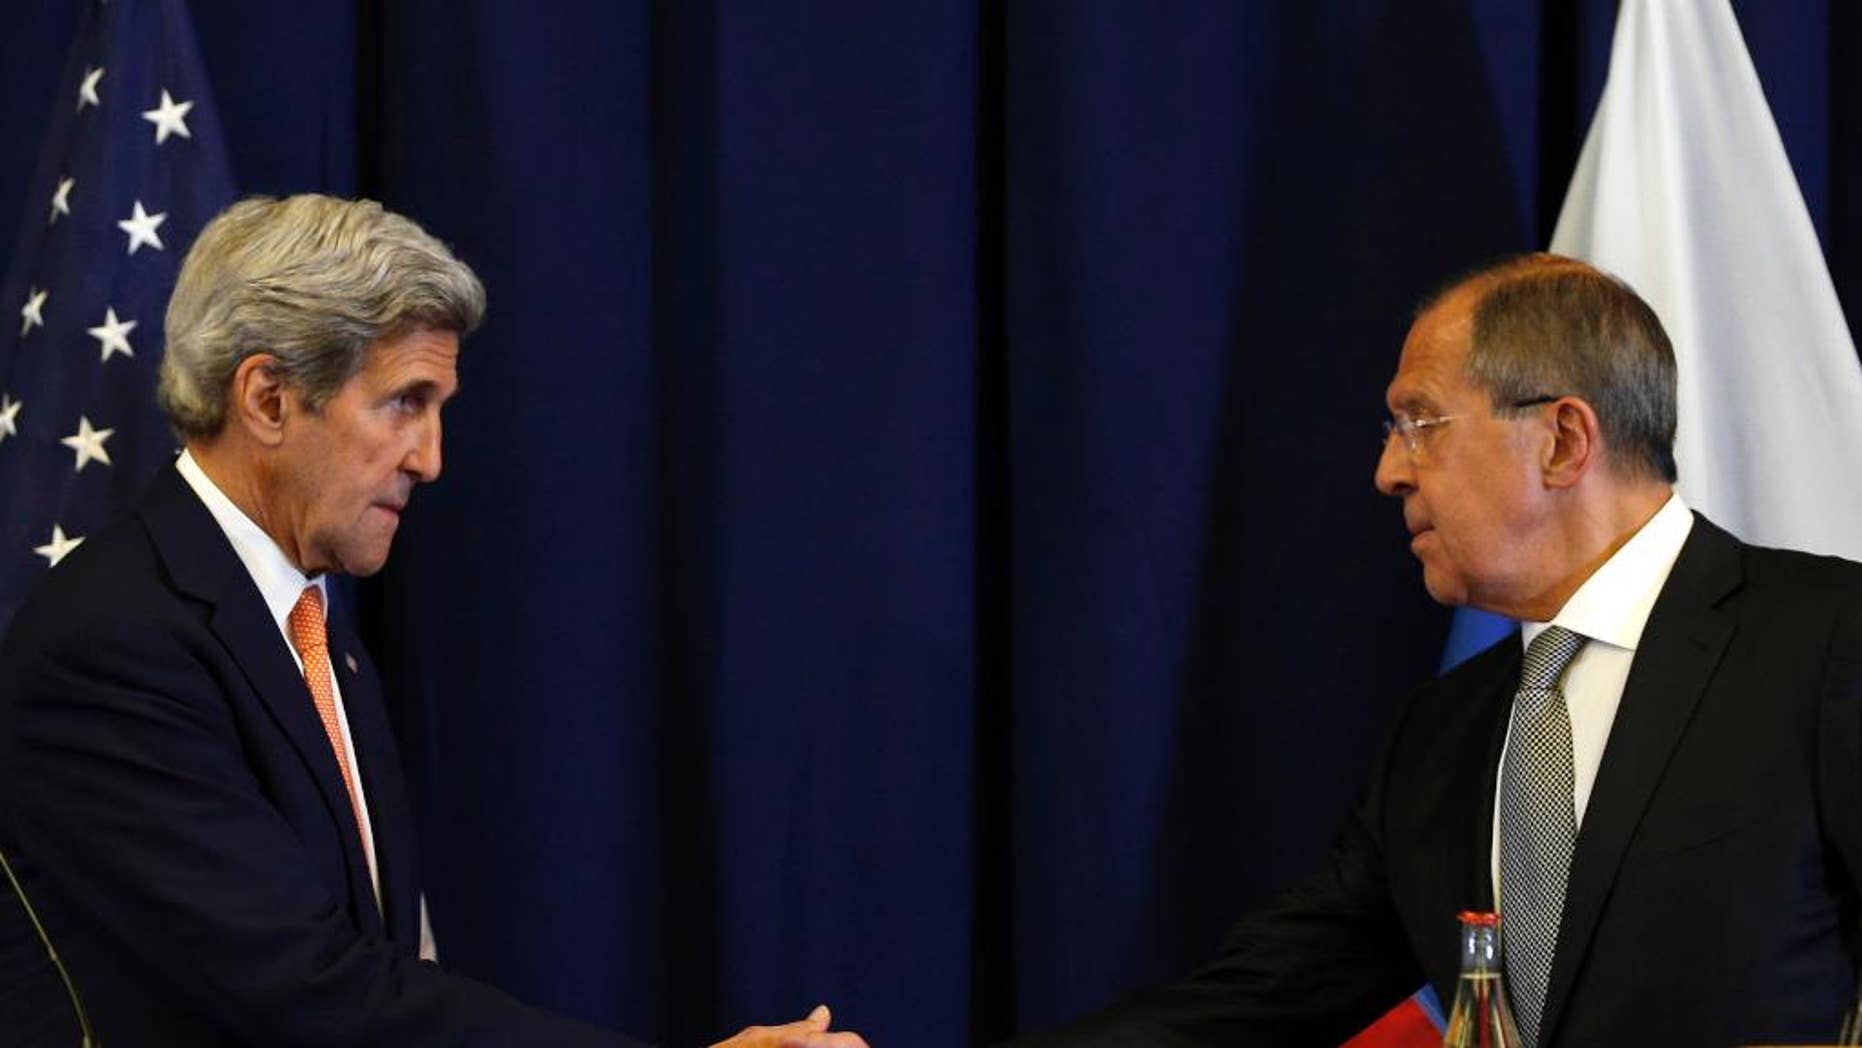 In this Sept. 9, 2016, photo, U.S. Secretary of State John Kerry, left, and Russian Foreign Minister Sergei Lavrov shakes hands at the conclusion of a news conference following their meeting to discuss the crisis in Syria, in Geneva, Switzerland. The deal crafted by the U.S. and Russia to halt the Syrian civil war and focus efforts on rooting out extremists in the country is rife with legal and liability questions that are fueling Pentagon skepticism about military cooperation between the two powers, senior U.S. officials said. (Kevin Lamarque/Pool Photo via AP)